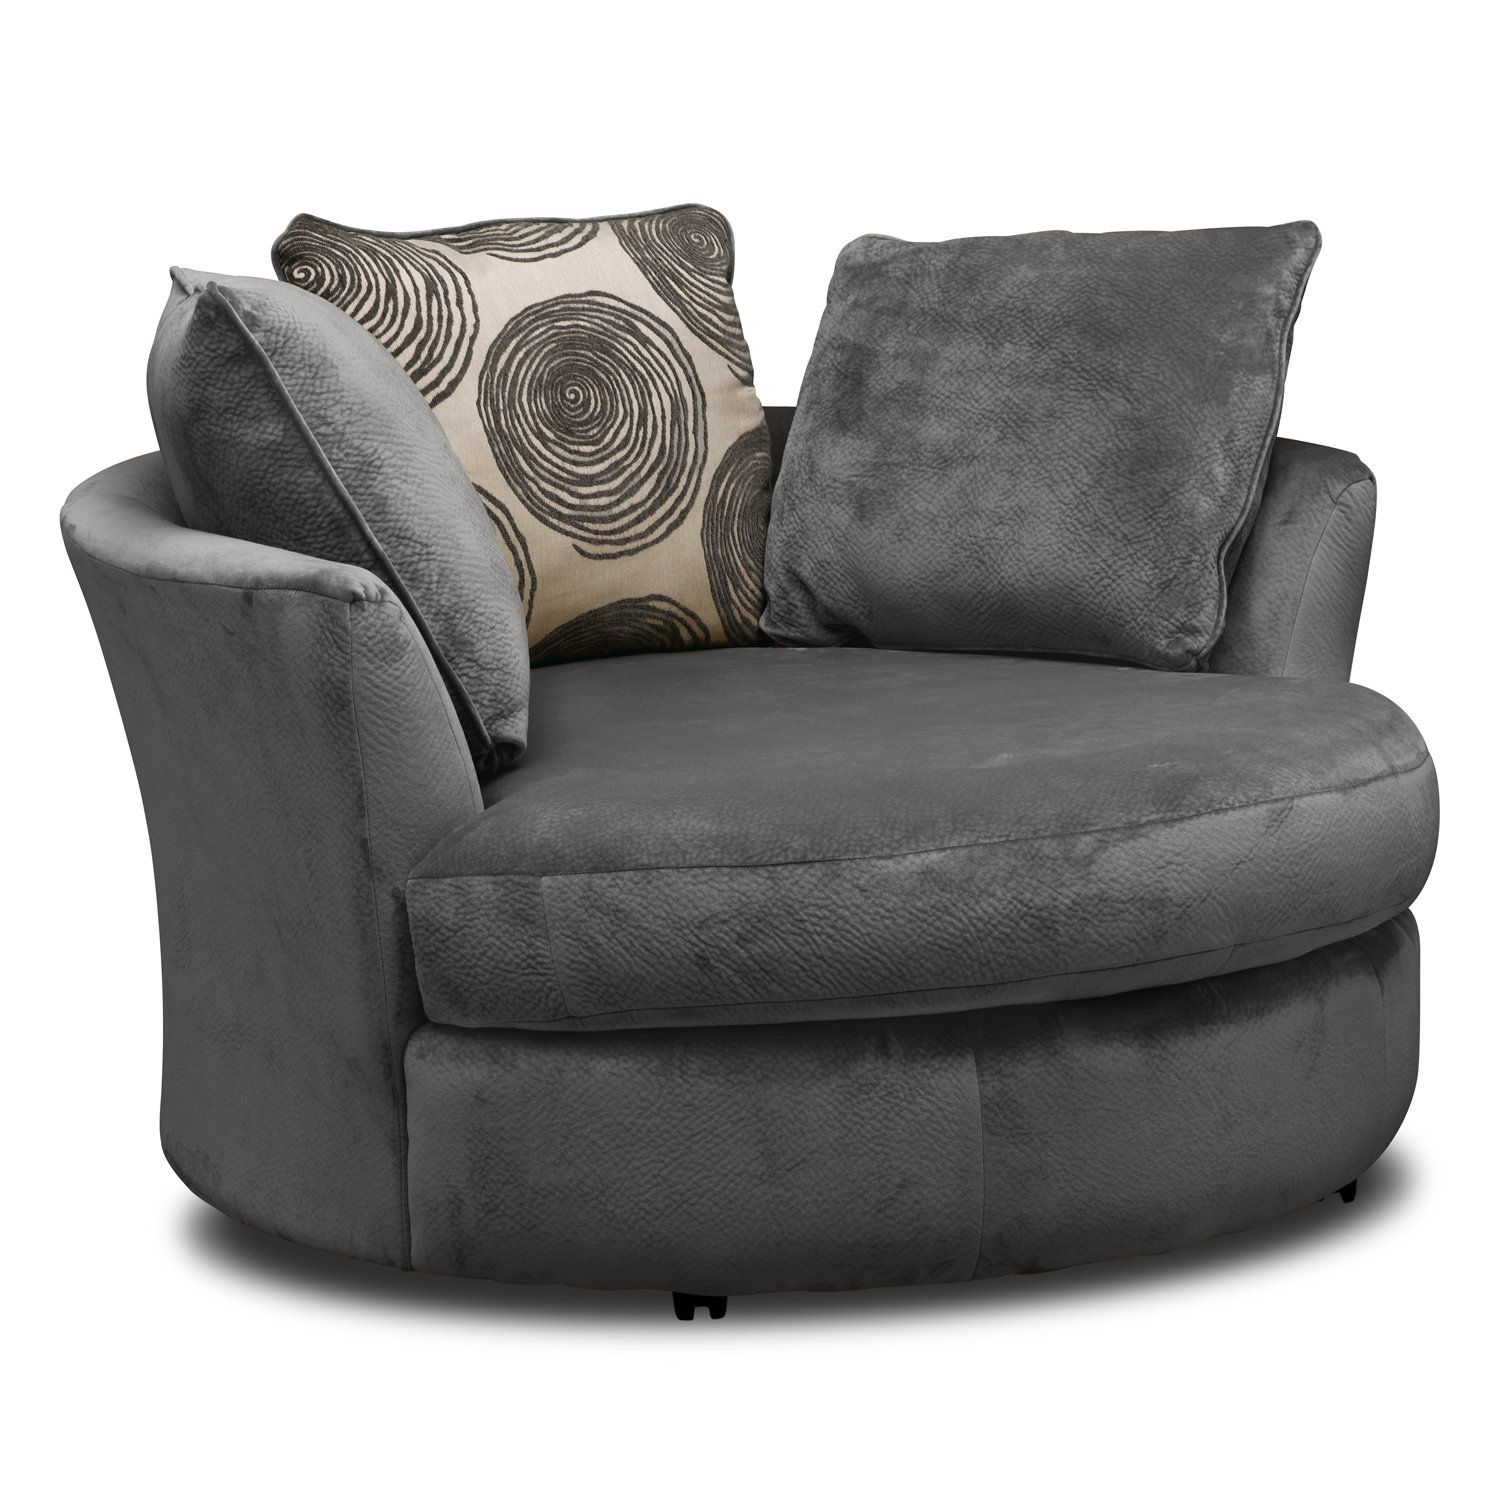 Designer Swivel Chairs For Living Room Living Room Furniture  Cordelle Swivel Chair  Gray  Living Room